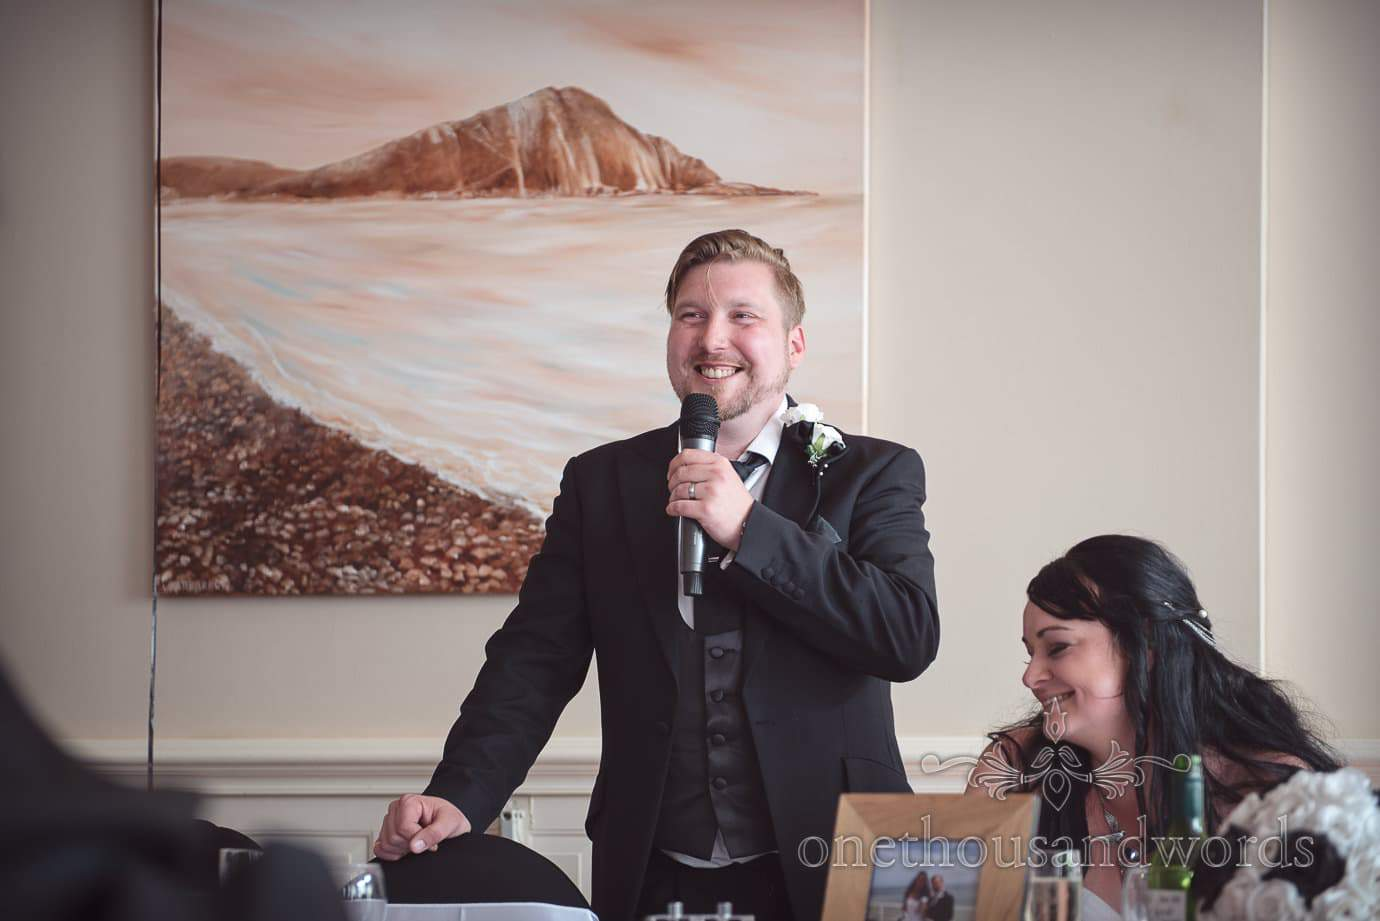 Happy groom makes wedding speech at black and white themed wedding